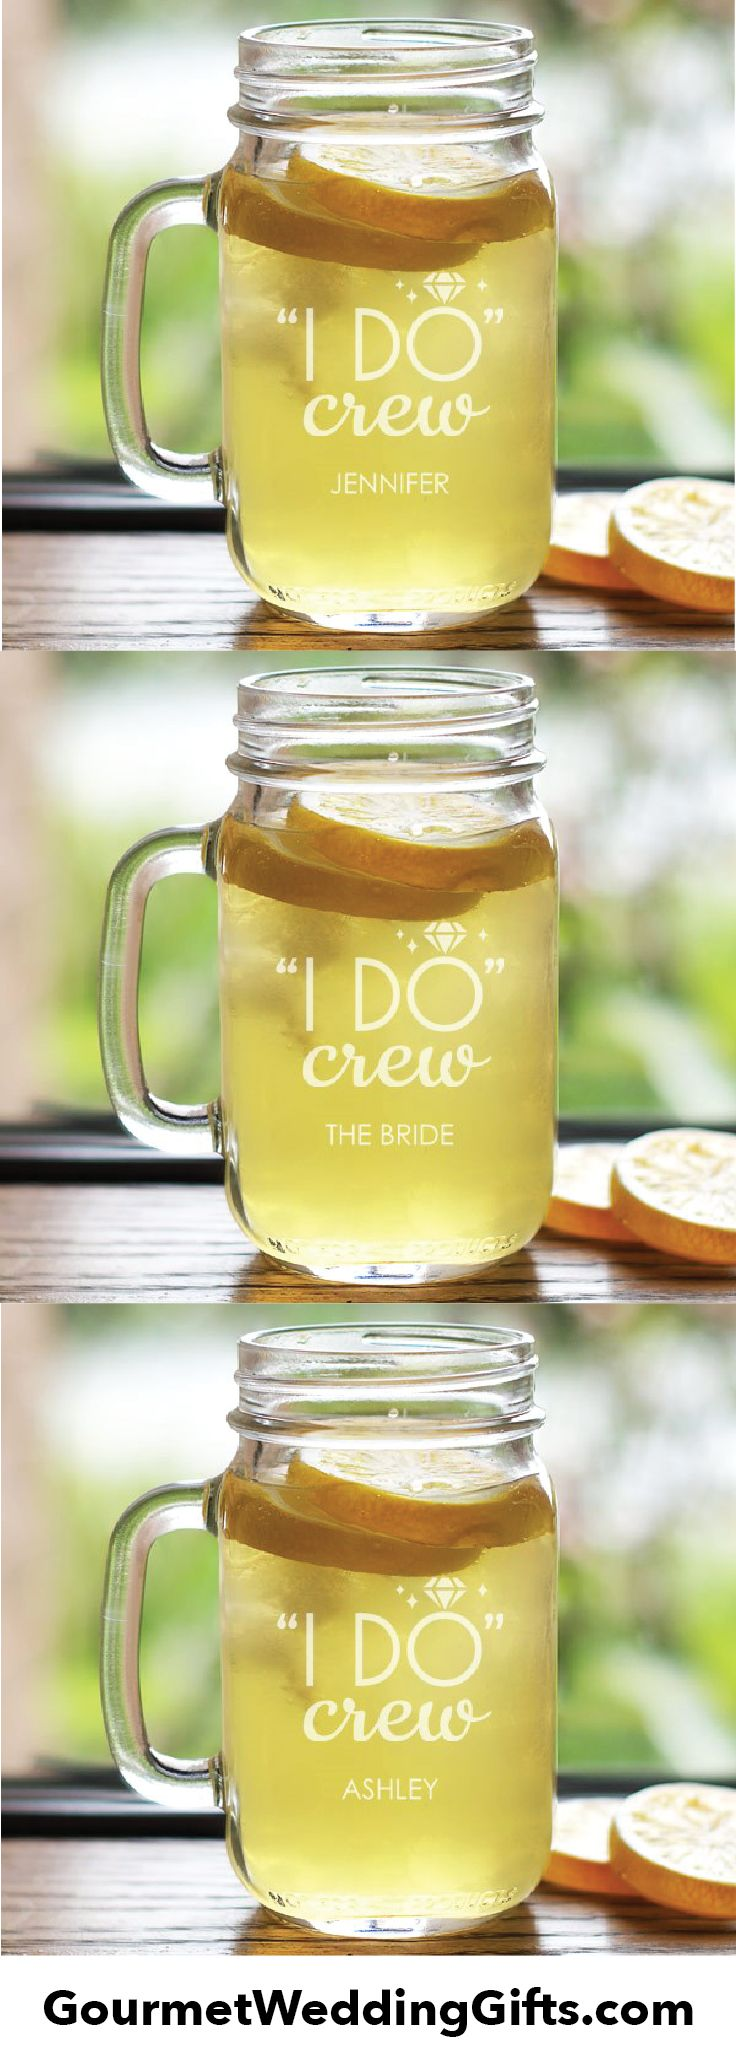 unique personalized bridesmaids gifts | bridal shower gift | fun wedding gift ideas | gifts for the bachelorette party | mason jars